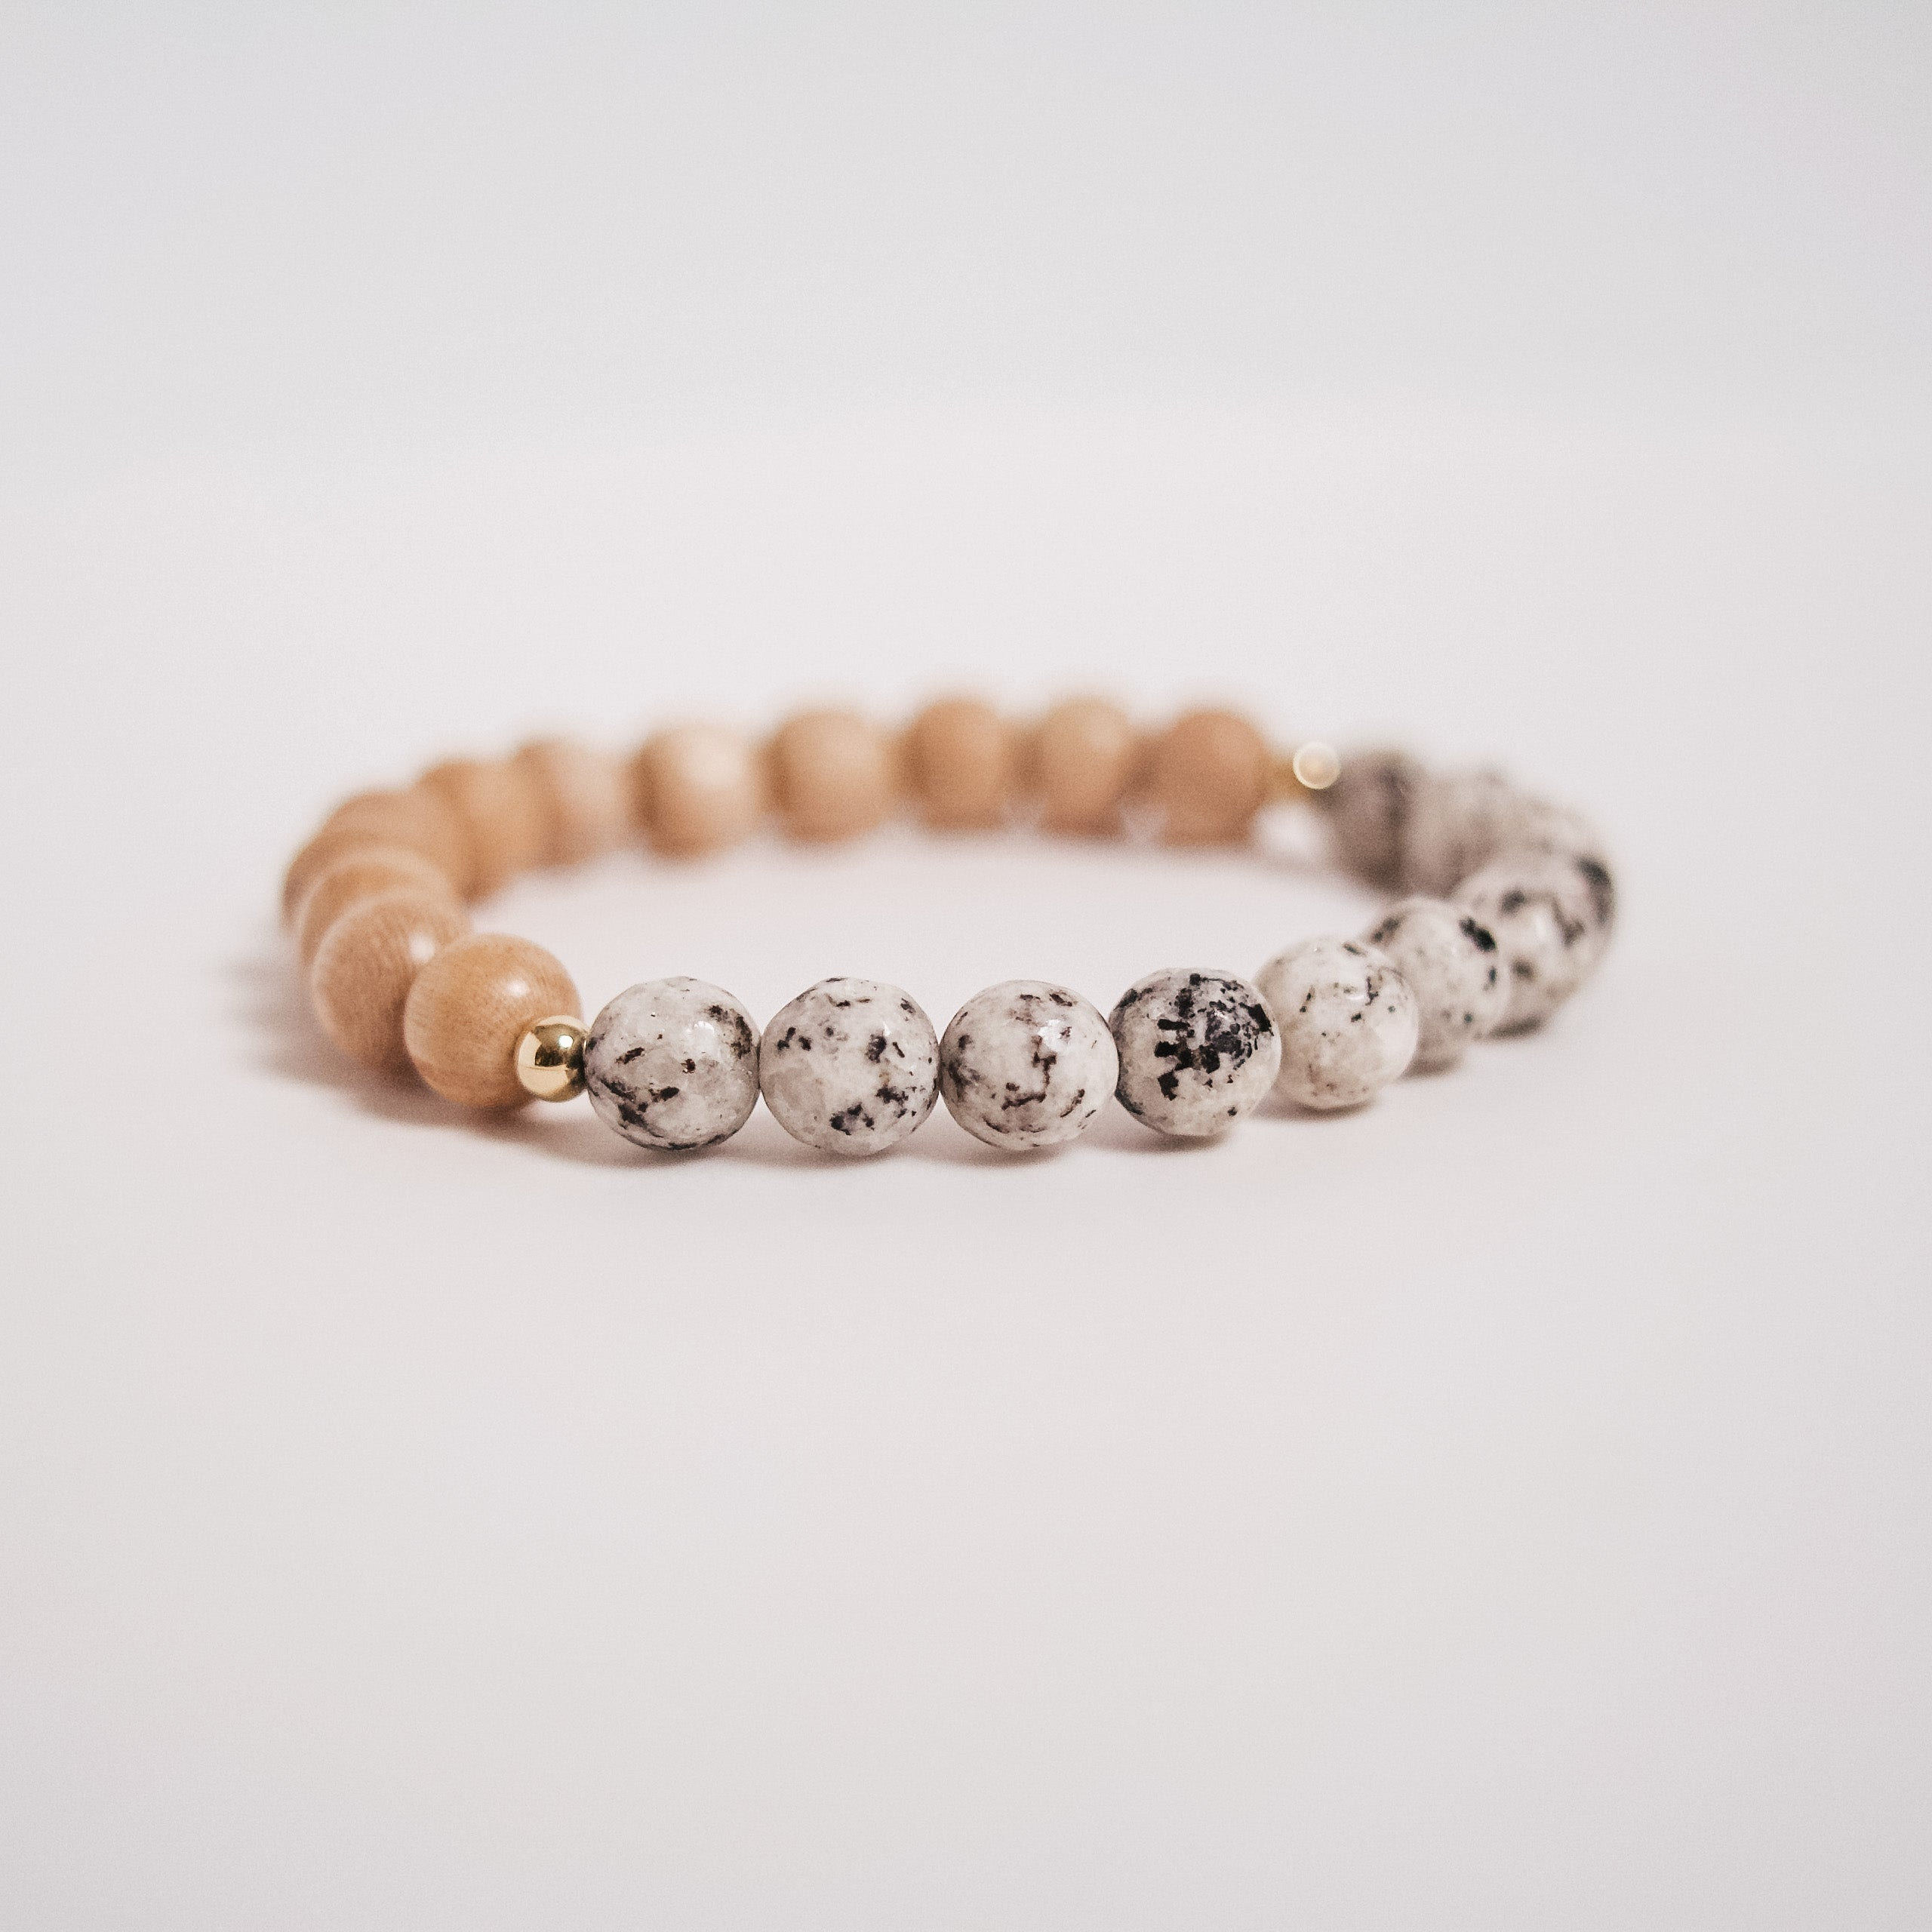 Lauren || Spotted Jasper and Rosewood single bracelet